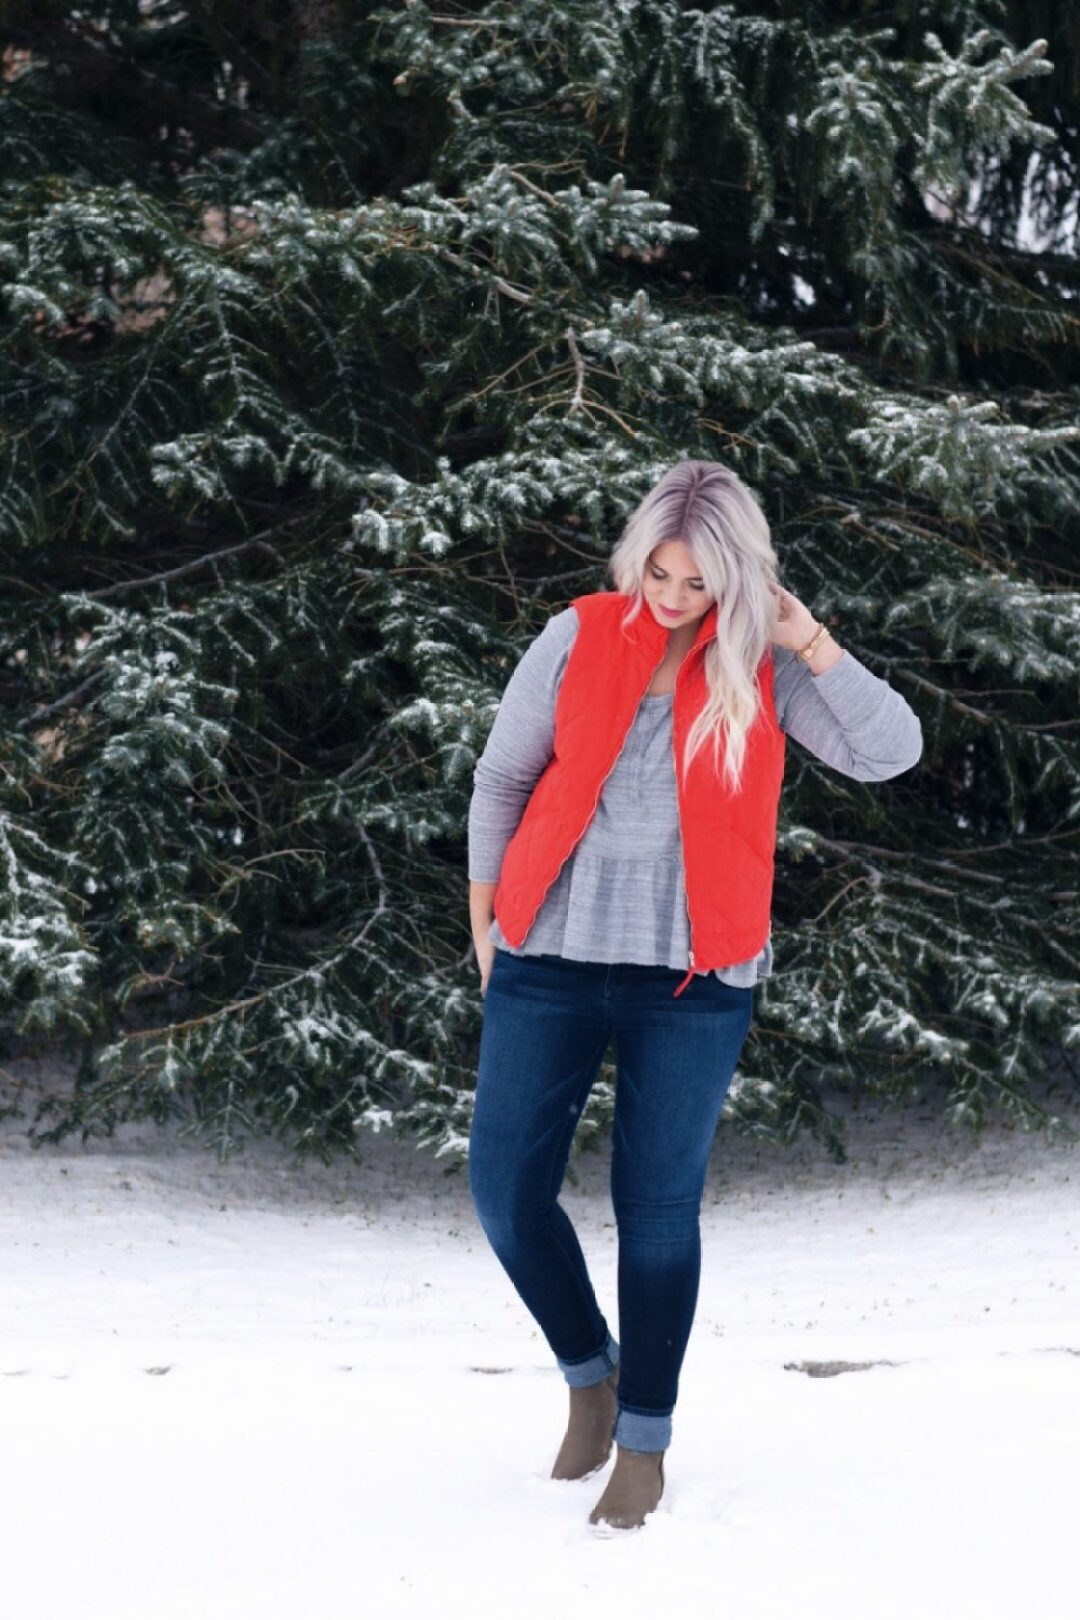 Red puffer vest winter outfit